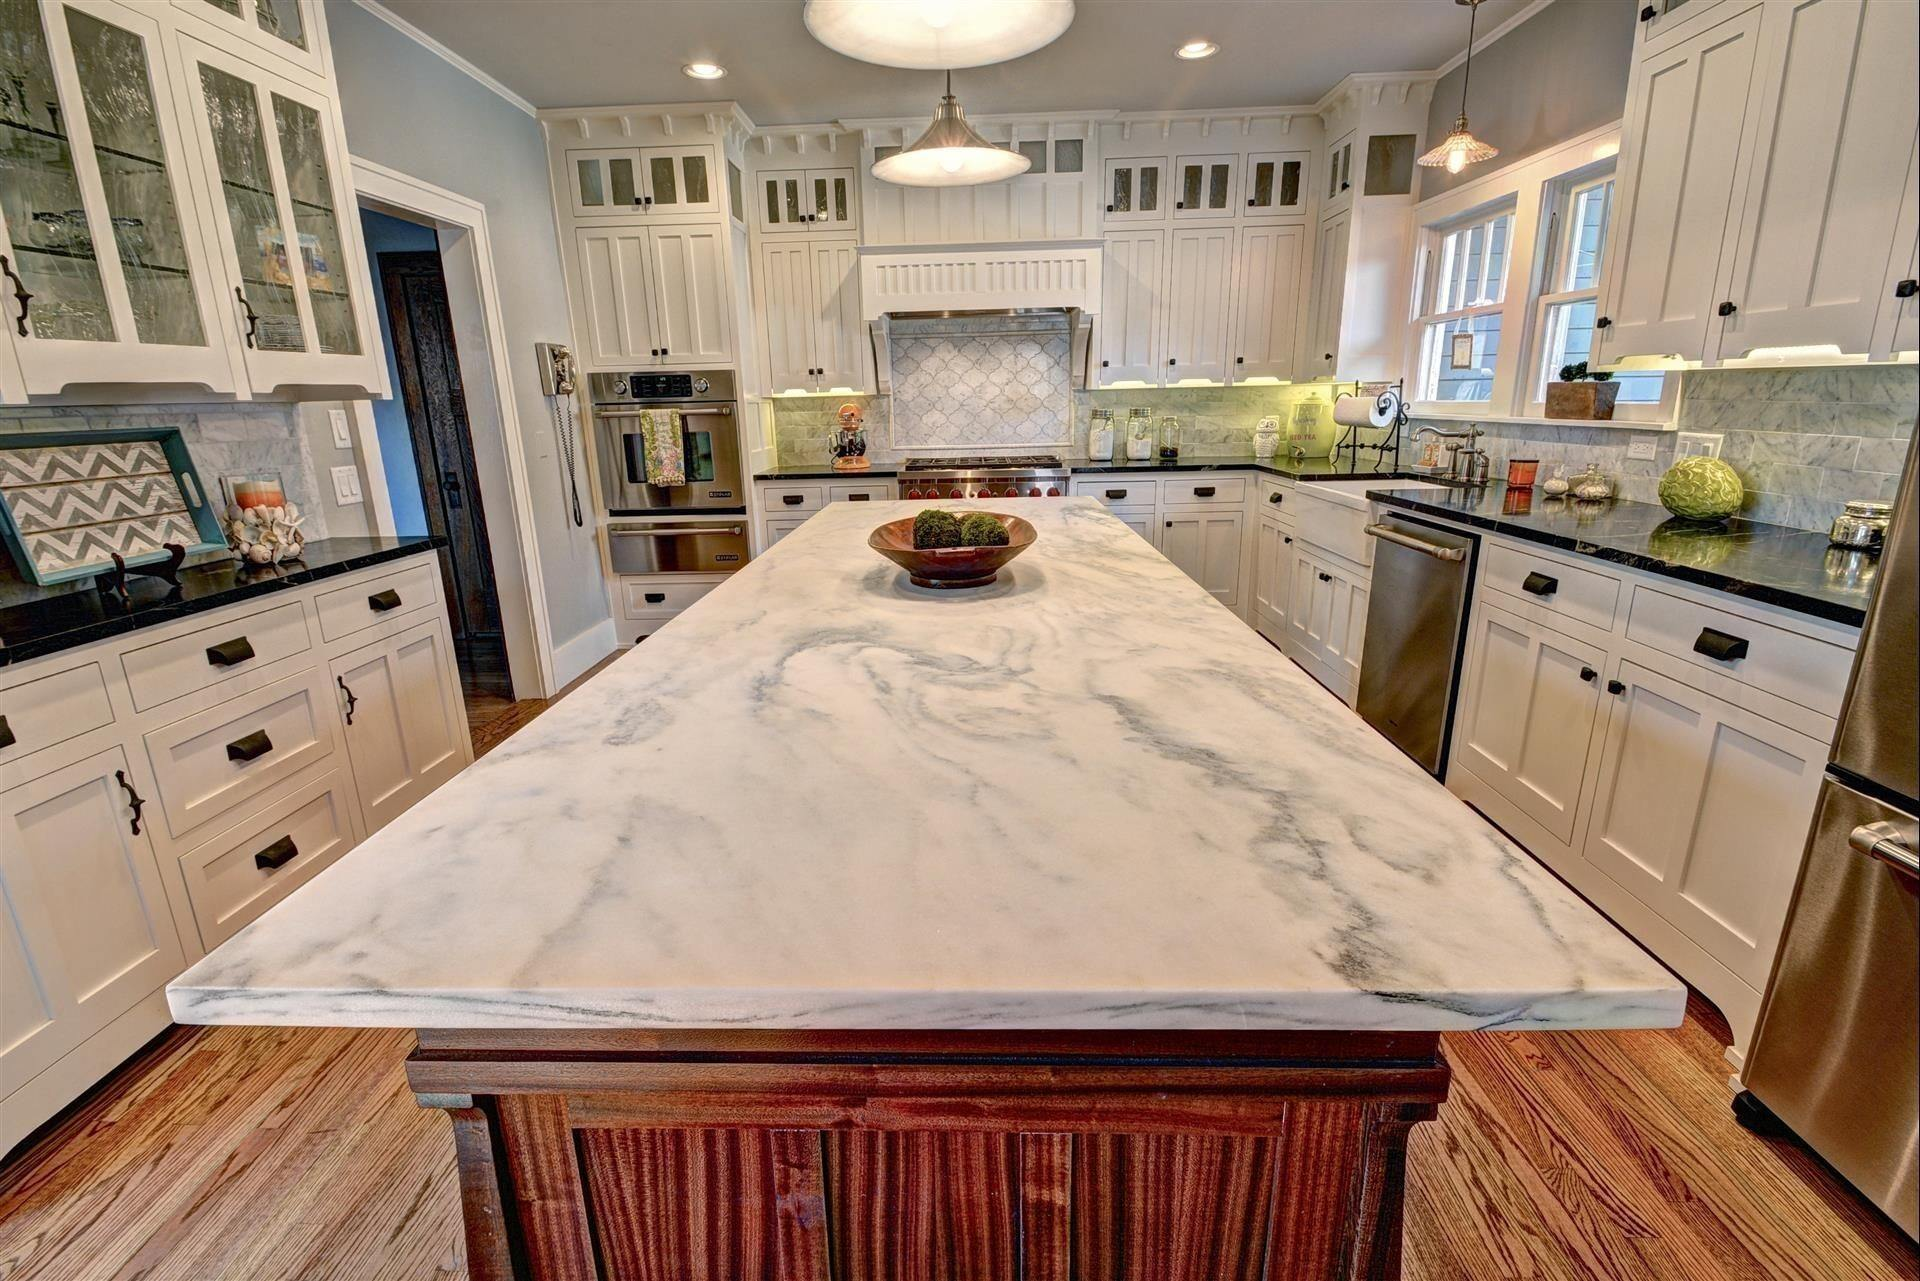 granite kitchen island Best of Kitchen islands with Granite top Fancy White Macaubas Quartzite Like